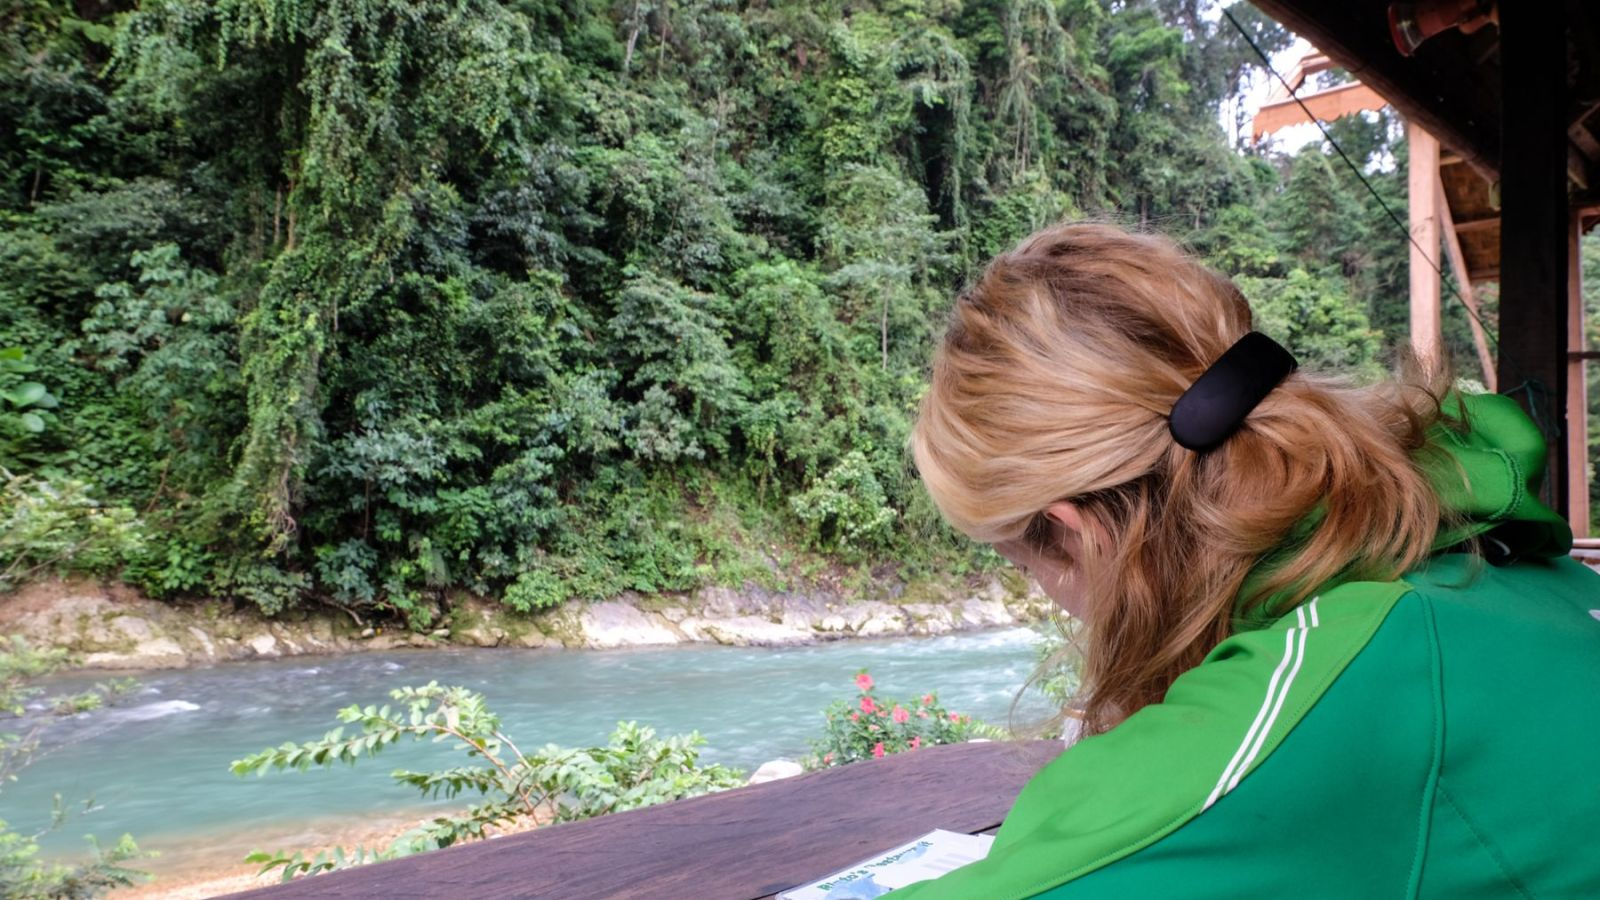 a photo of a person in a restaurant in bukit lawang with a river in the background.